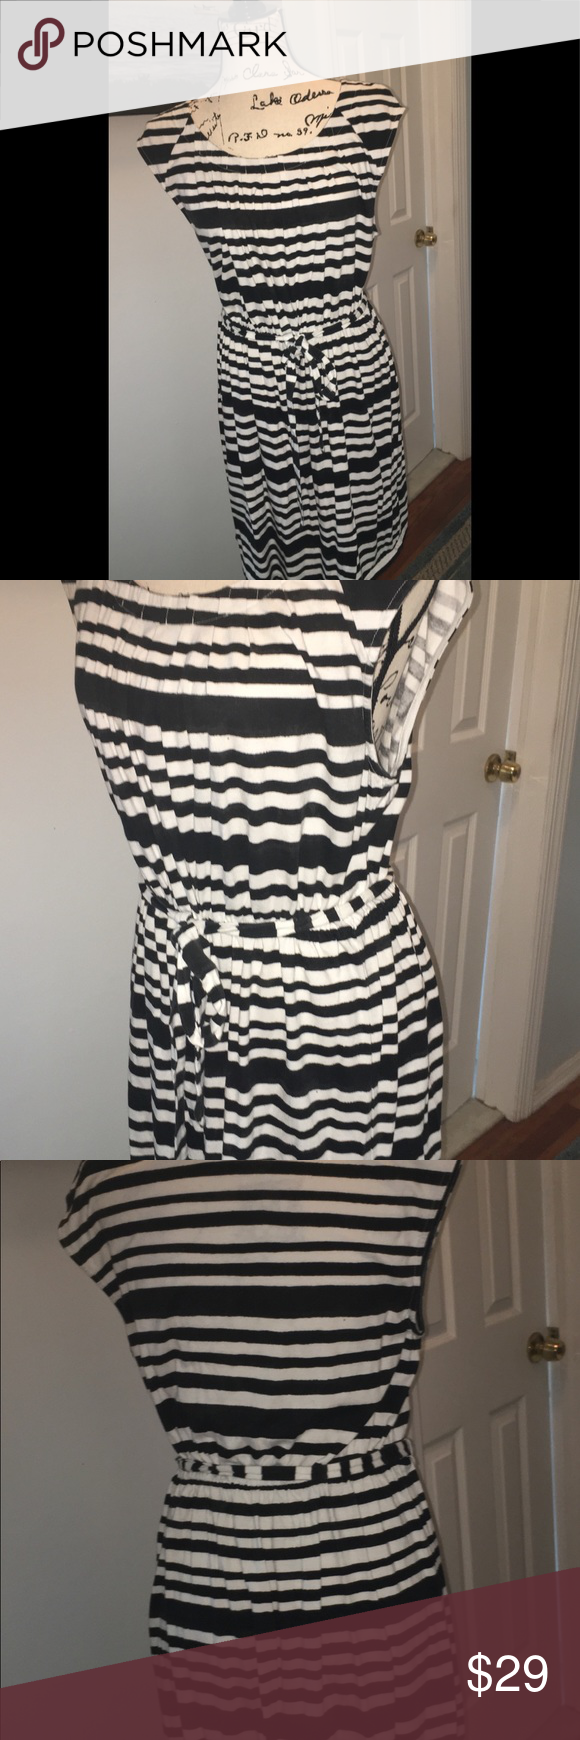 Loft Black And White Striped Dress In 2018 Fashion Style Simpel Elegan Greyish Free Belt Capped Sleeves Soft Pullover Type With Thin This Is Summer Flirty Comfy Fun